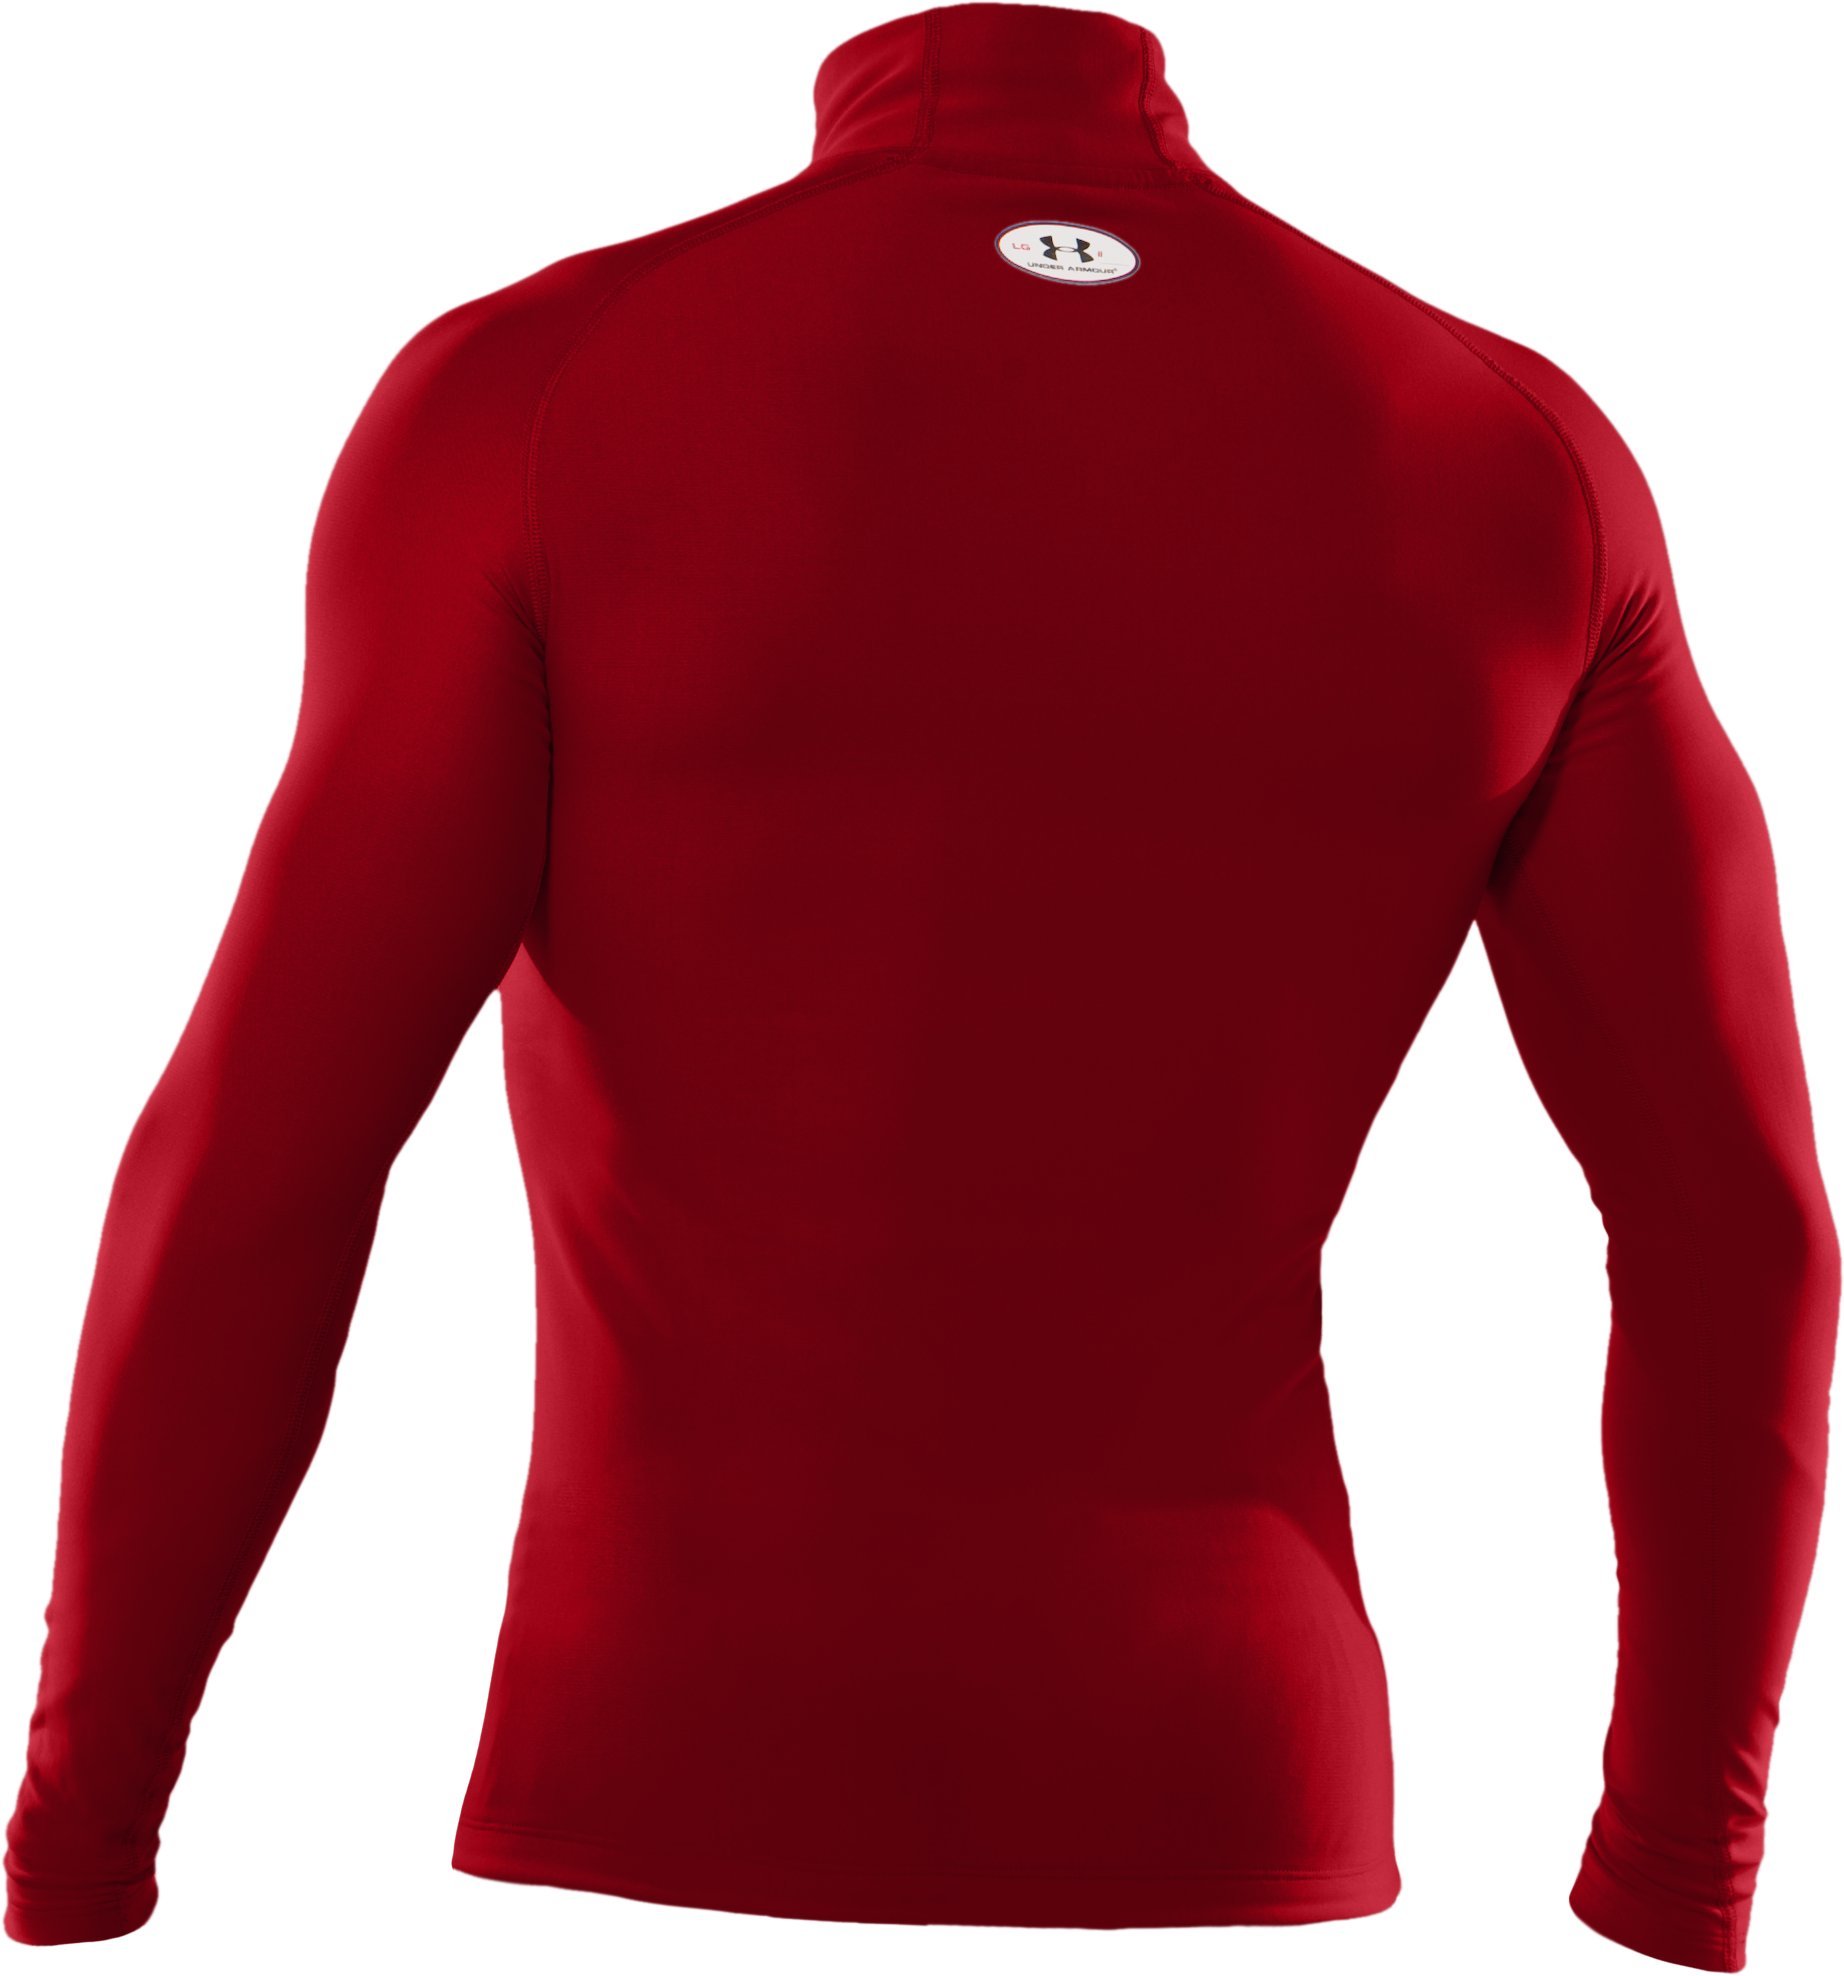 Men's ColdGear® Evo Long Sleeve Compression Mock, Red,